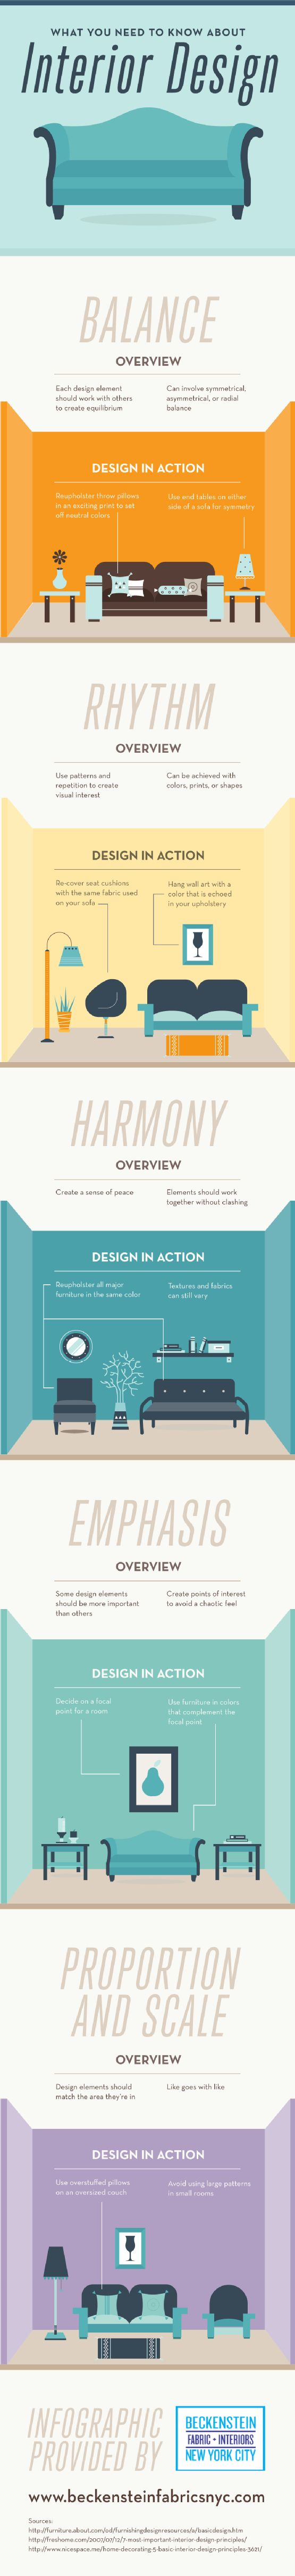 What You Need To Know About Interior Design INFOGRAPHIC Marvelous Visual Of A Crash Course In Using Basic Principles Interiors